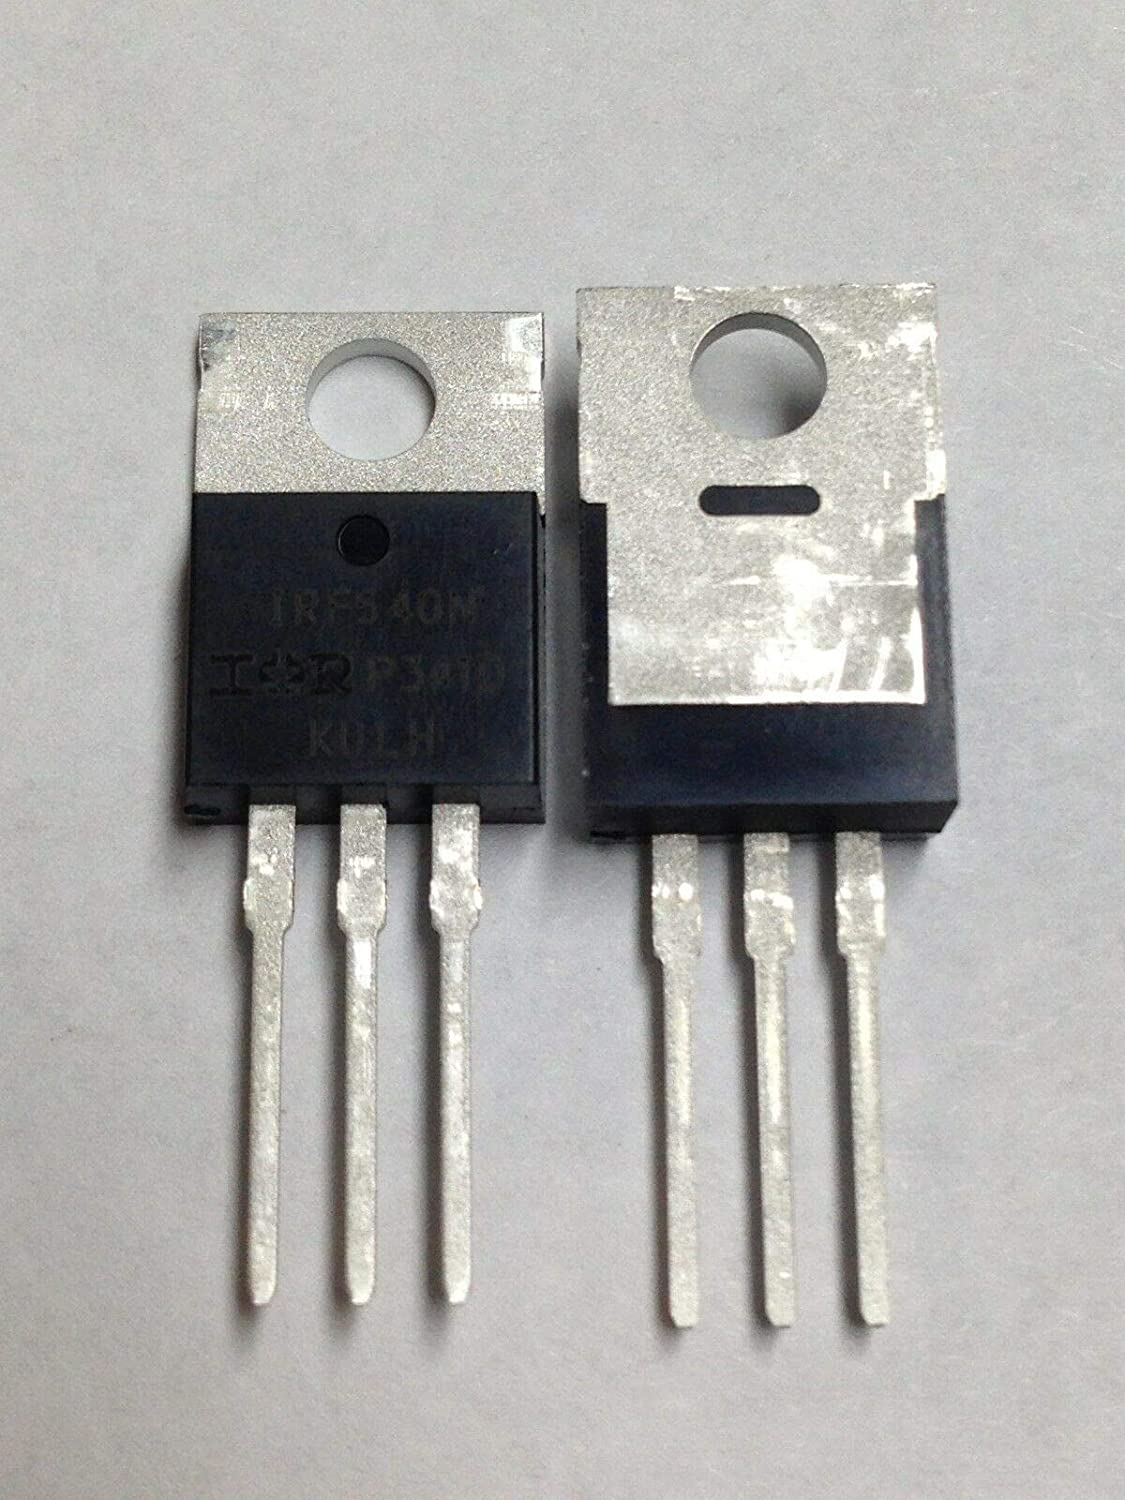 IRF540N IRF540 IR MOSFET Ranking TOP1 N-Channel 33A Heatsink 2 100V pcs NEW before selling with